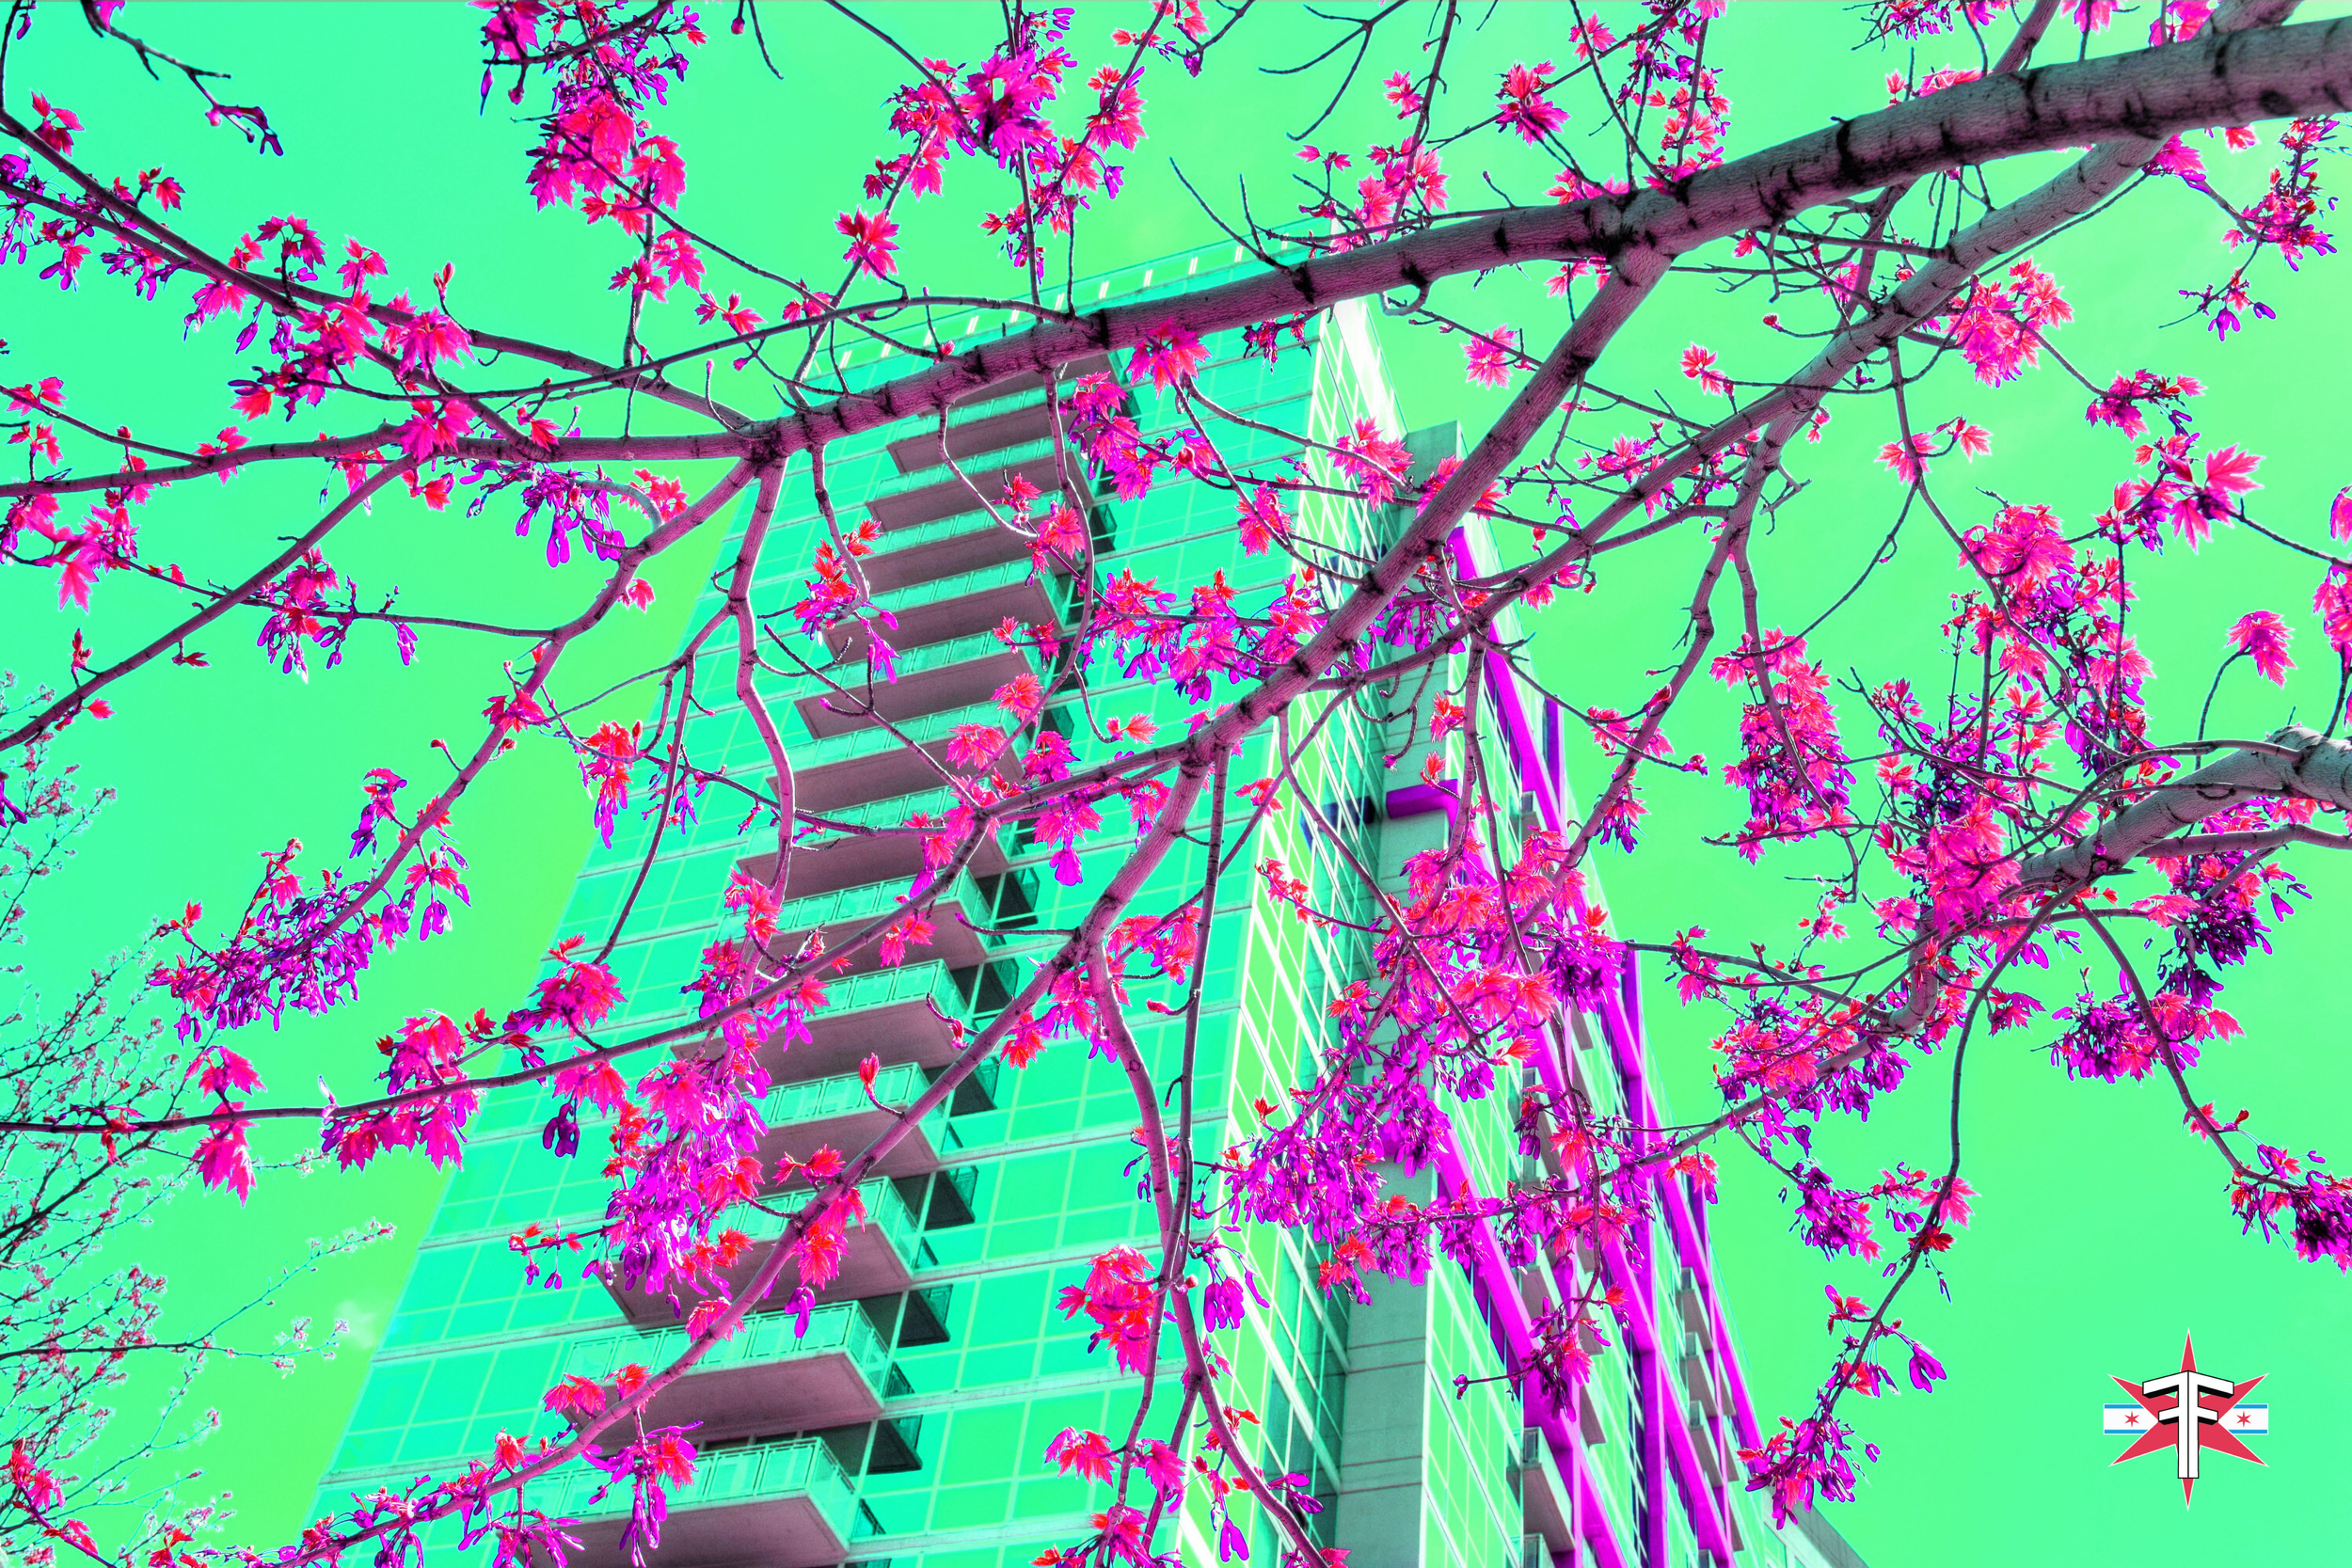 chicago art abstract eric formato photography color travel cityscape architecture saturated citycapes bright vibrant artistic-86.jpg